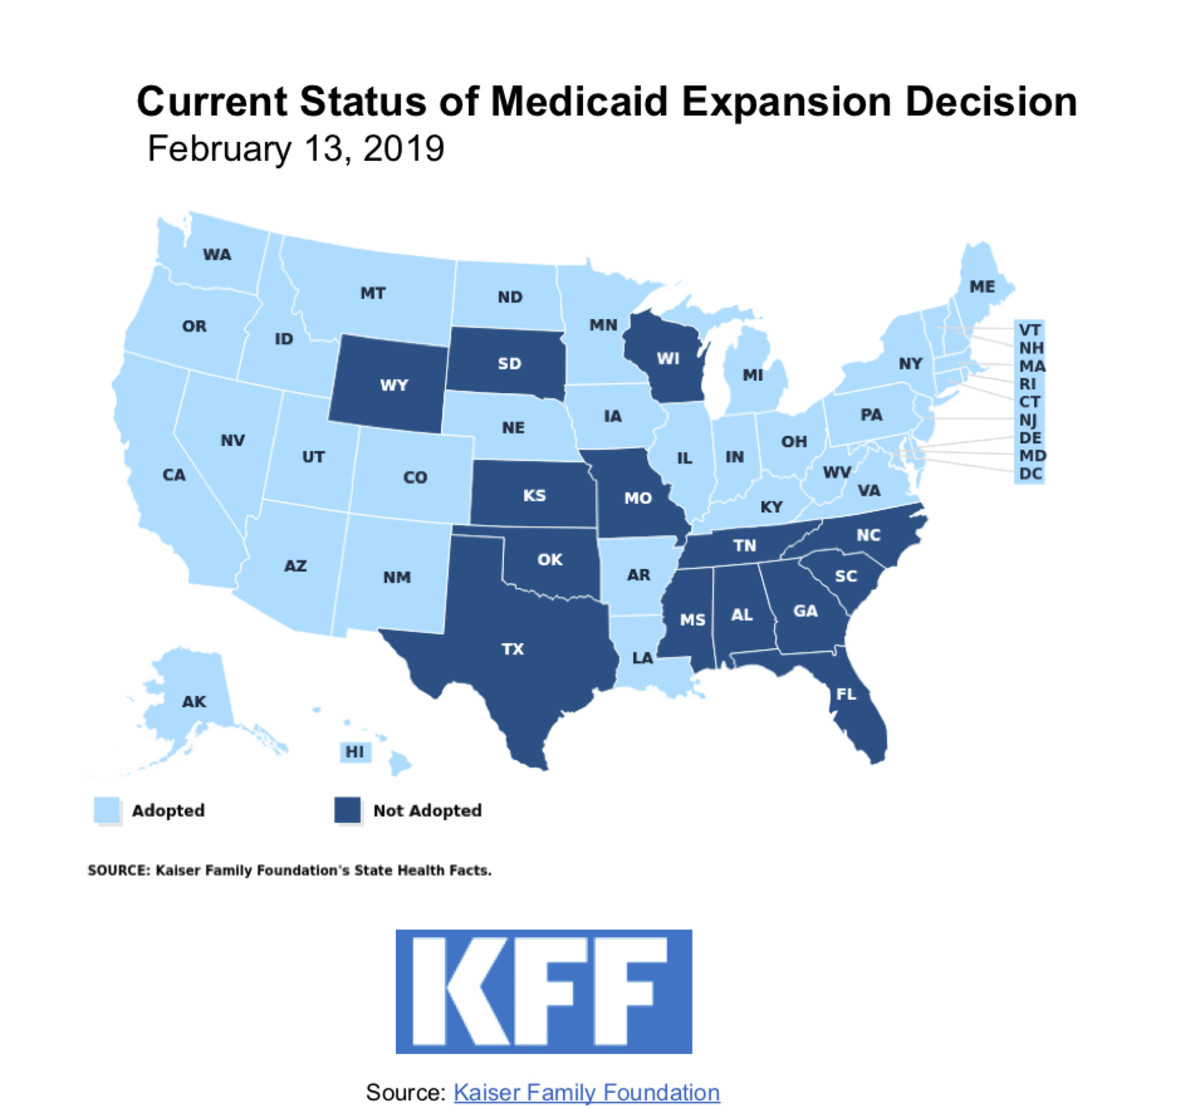 Medicaid Expansion Decision state by state